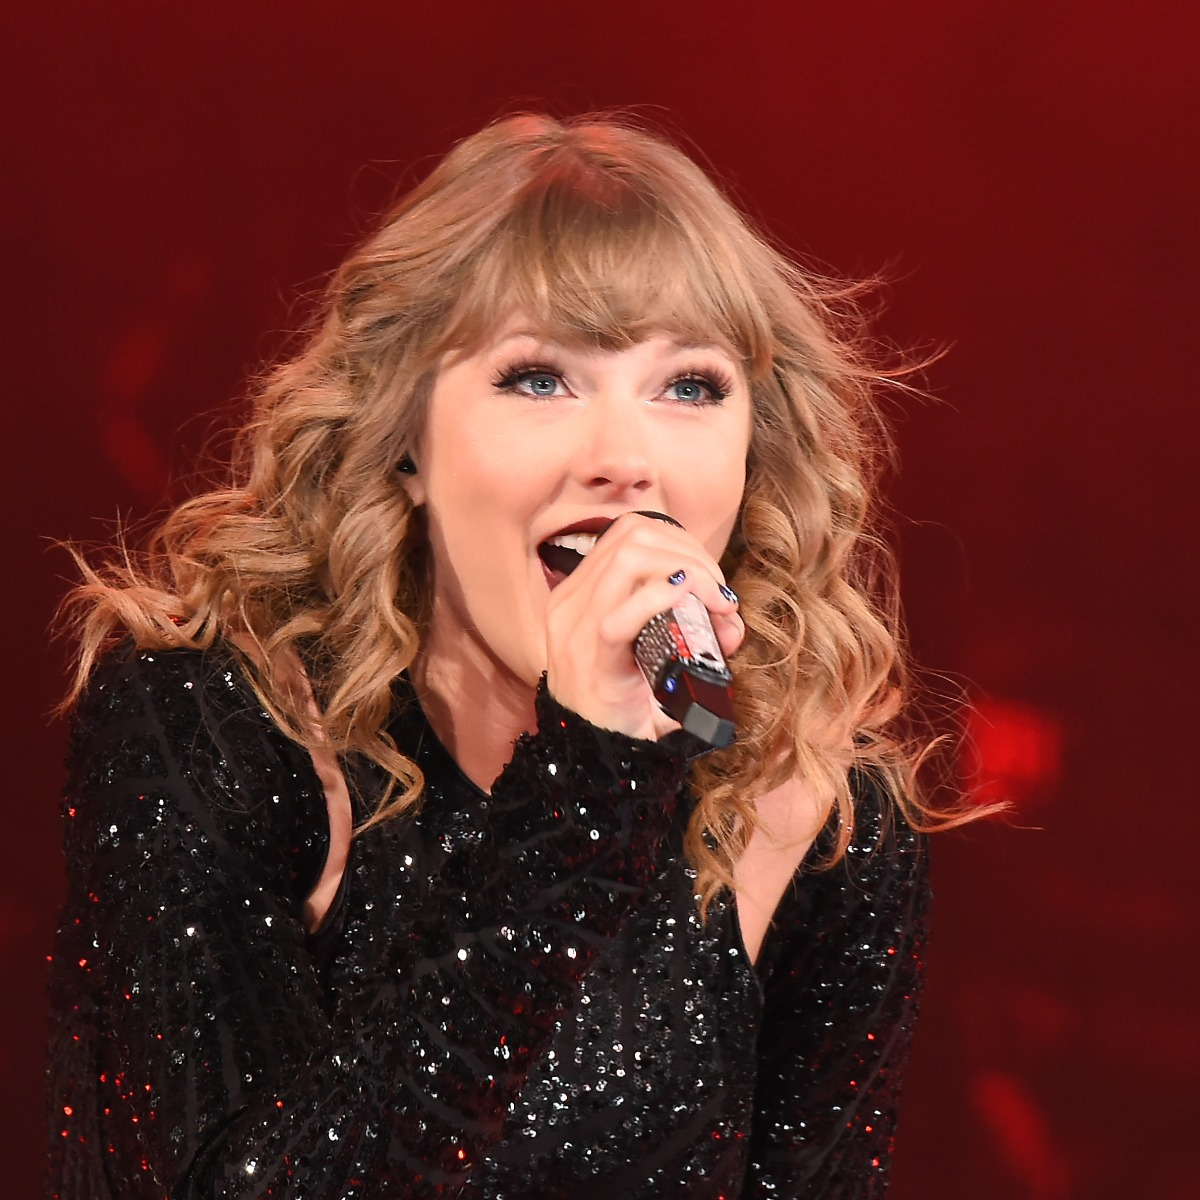 Taylor Swift's 7th Album 'Lover:' Release Date, Details and More